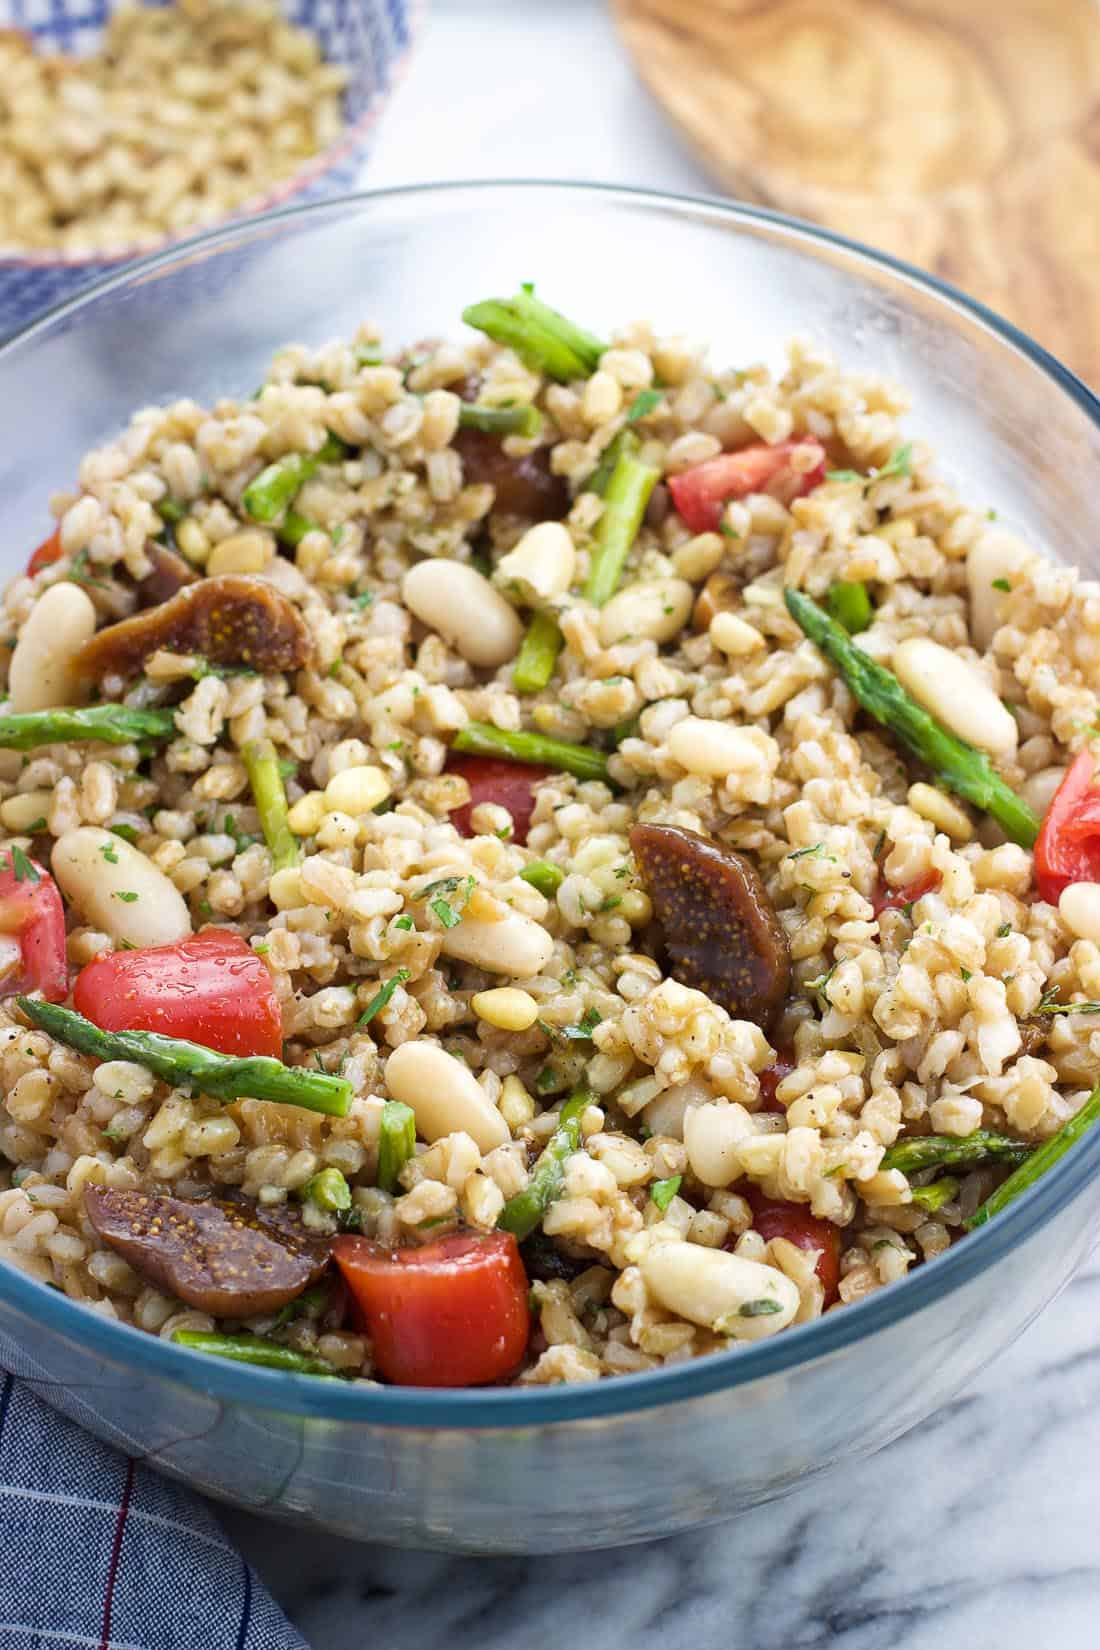 Assembled farro salad in a serving bowl